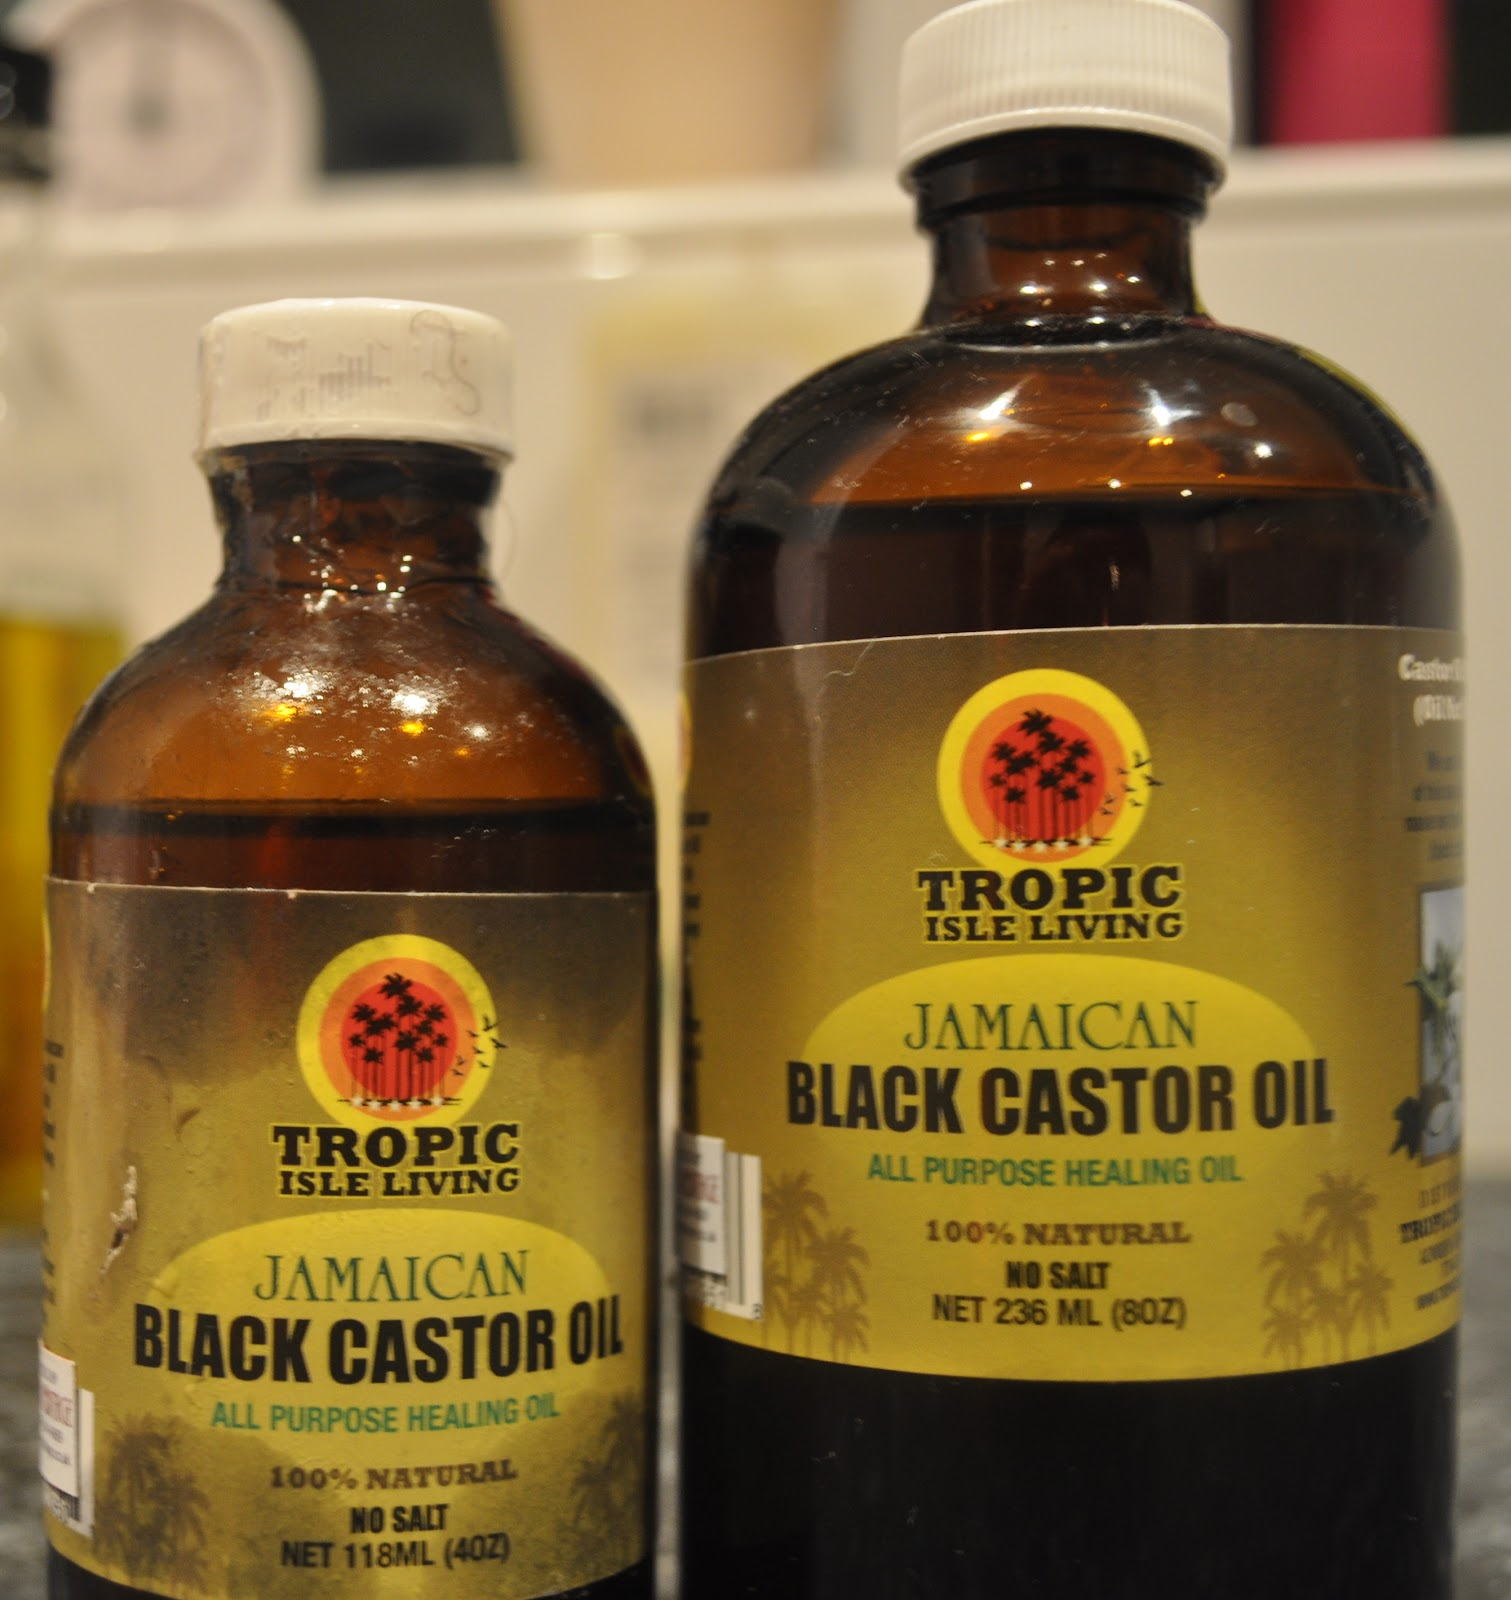 Theme of the day jamaican black castor oil for hair growth - Jamaican Black Castor Oil And Thinning Edges